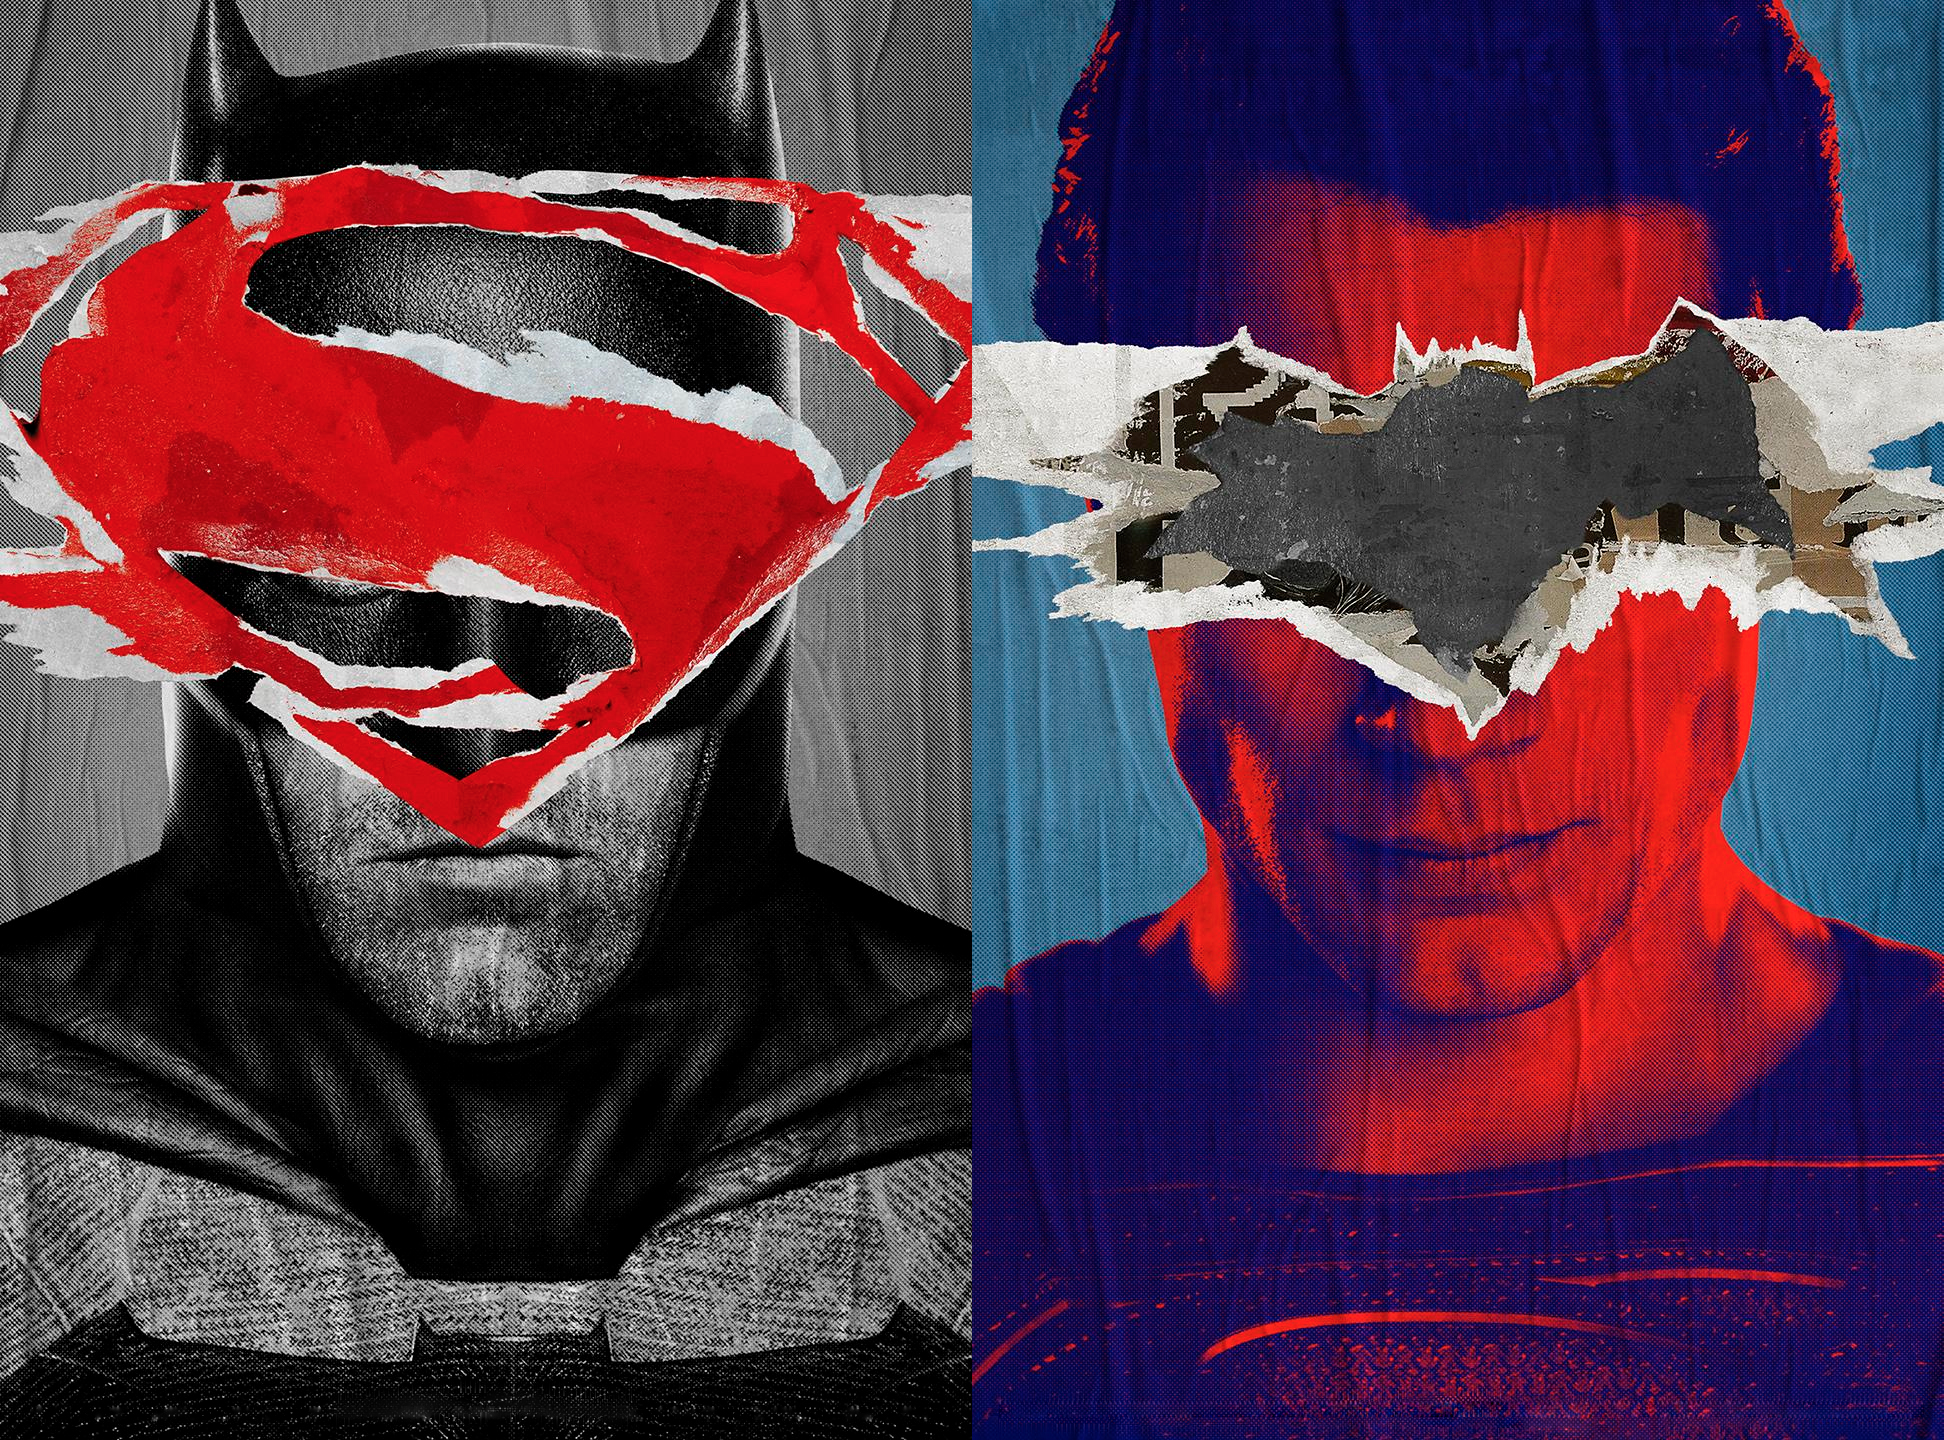 Batman Vs Superman Batman vs superman movie wallpaper 19201200 1944x1440